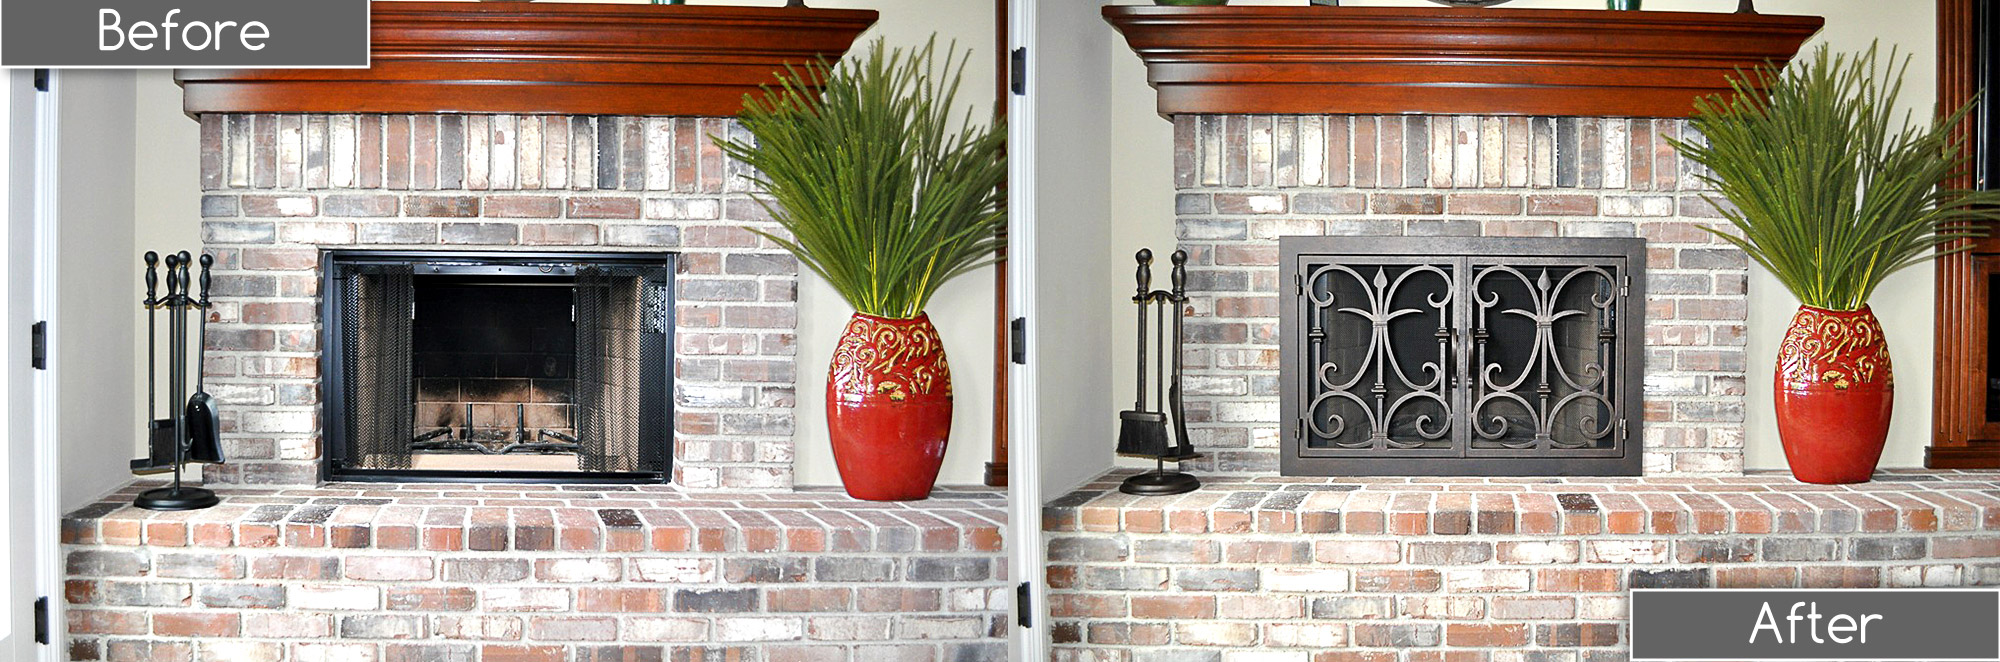 Rectangular Fireplace Door Before After